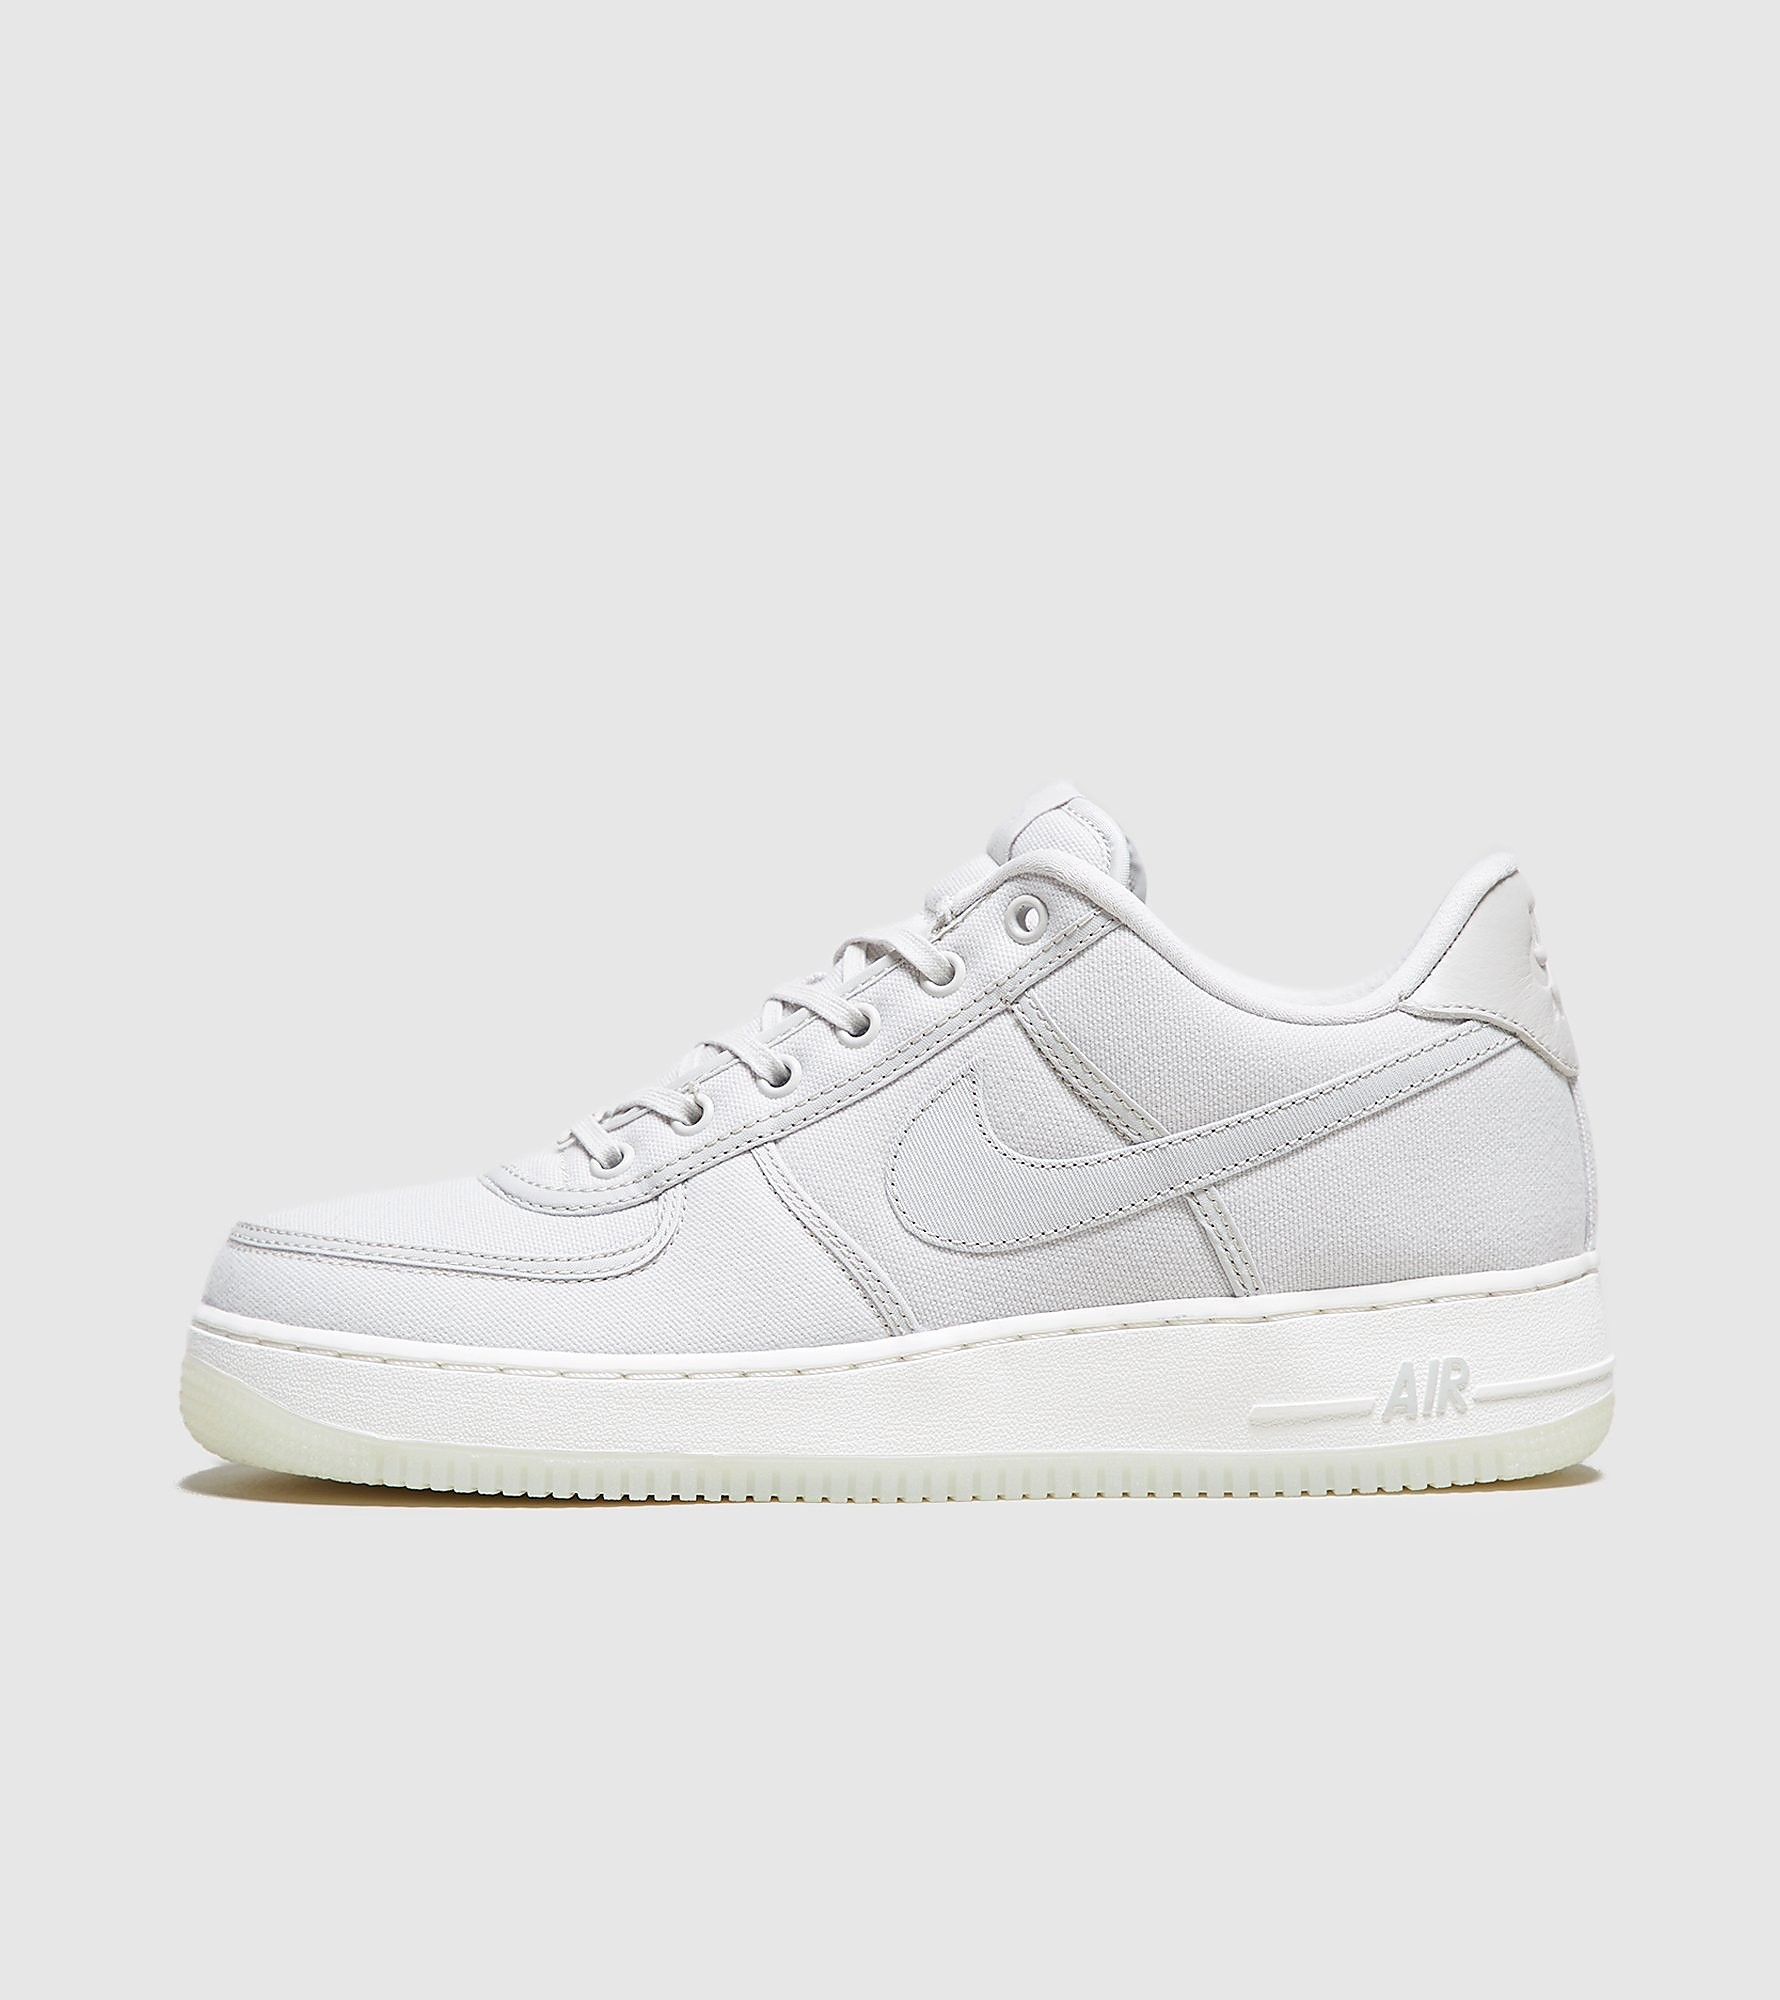 lowest price a9037 13d8f 30% Nike Nike Air Force 1 Low Retro QS Canvas, Grey